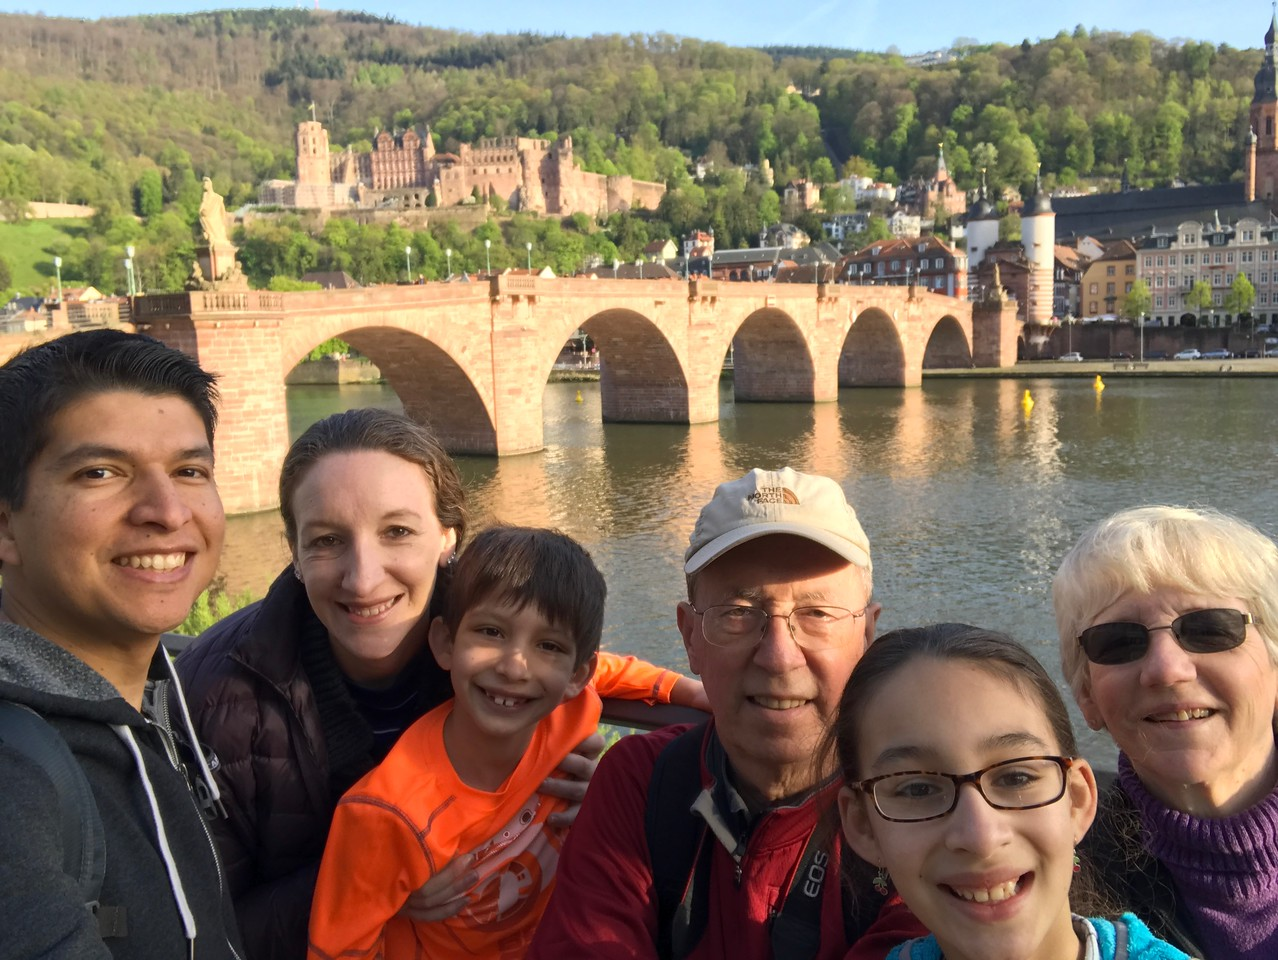 Us and Old Town Heidelberg from along the banks of the Neckar River.